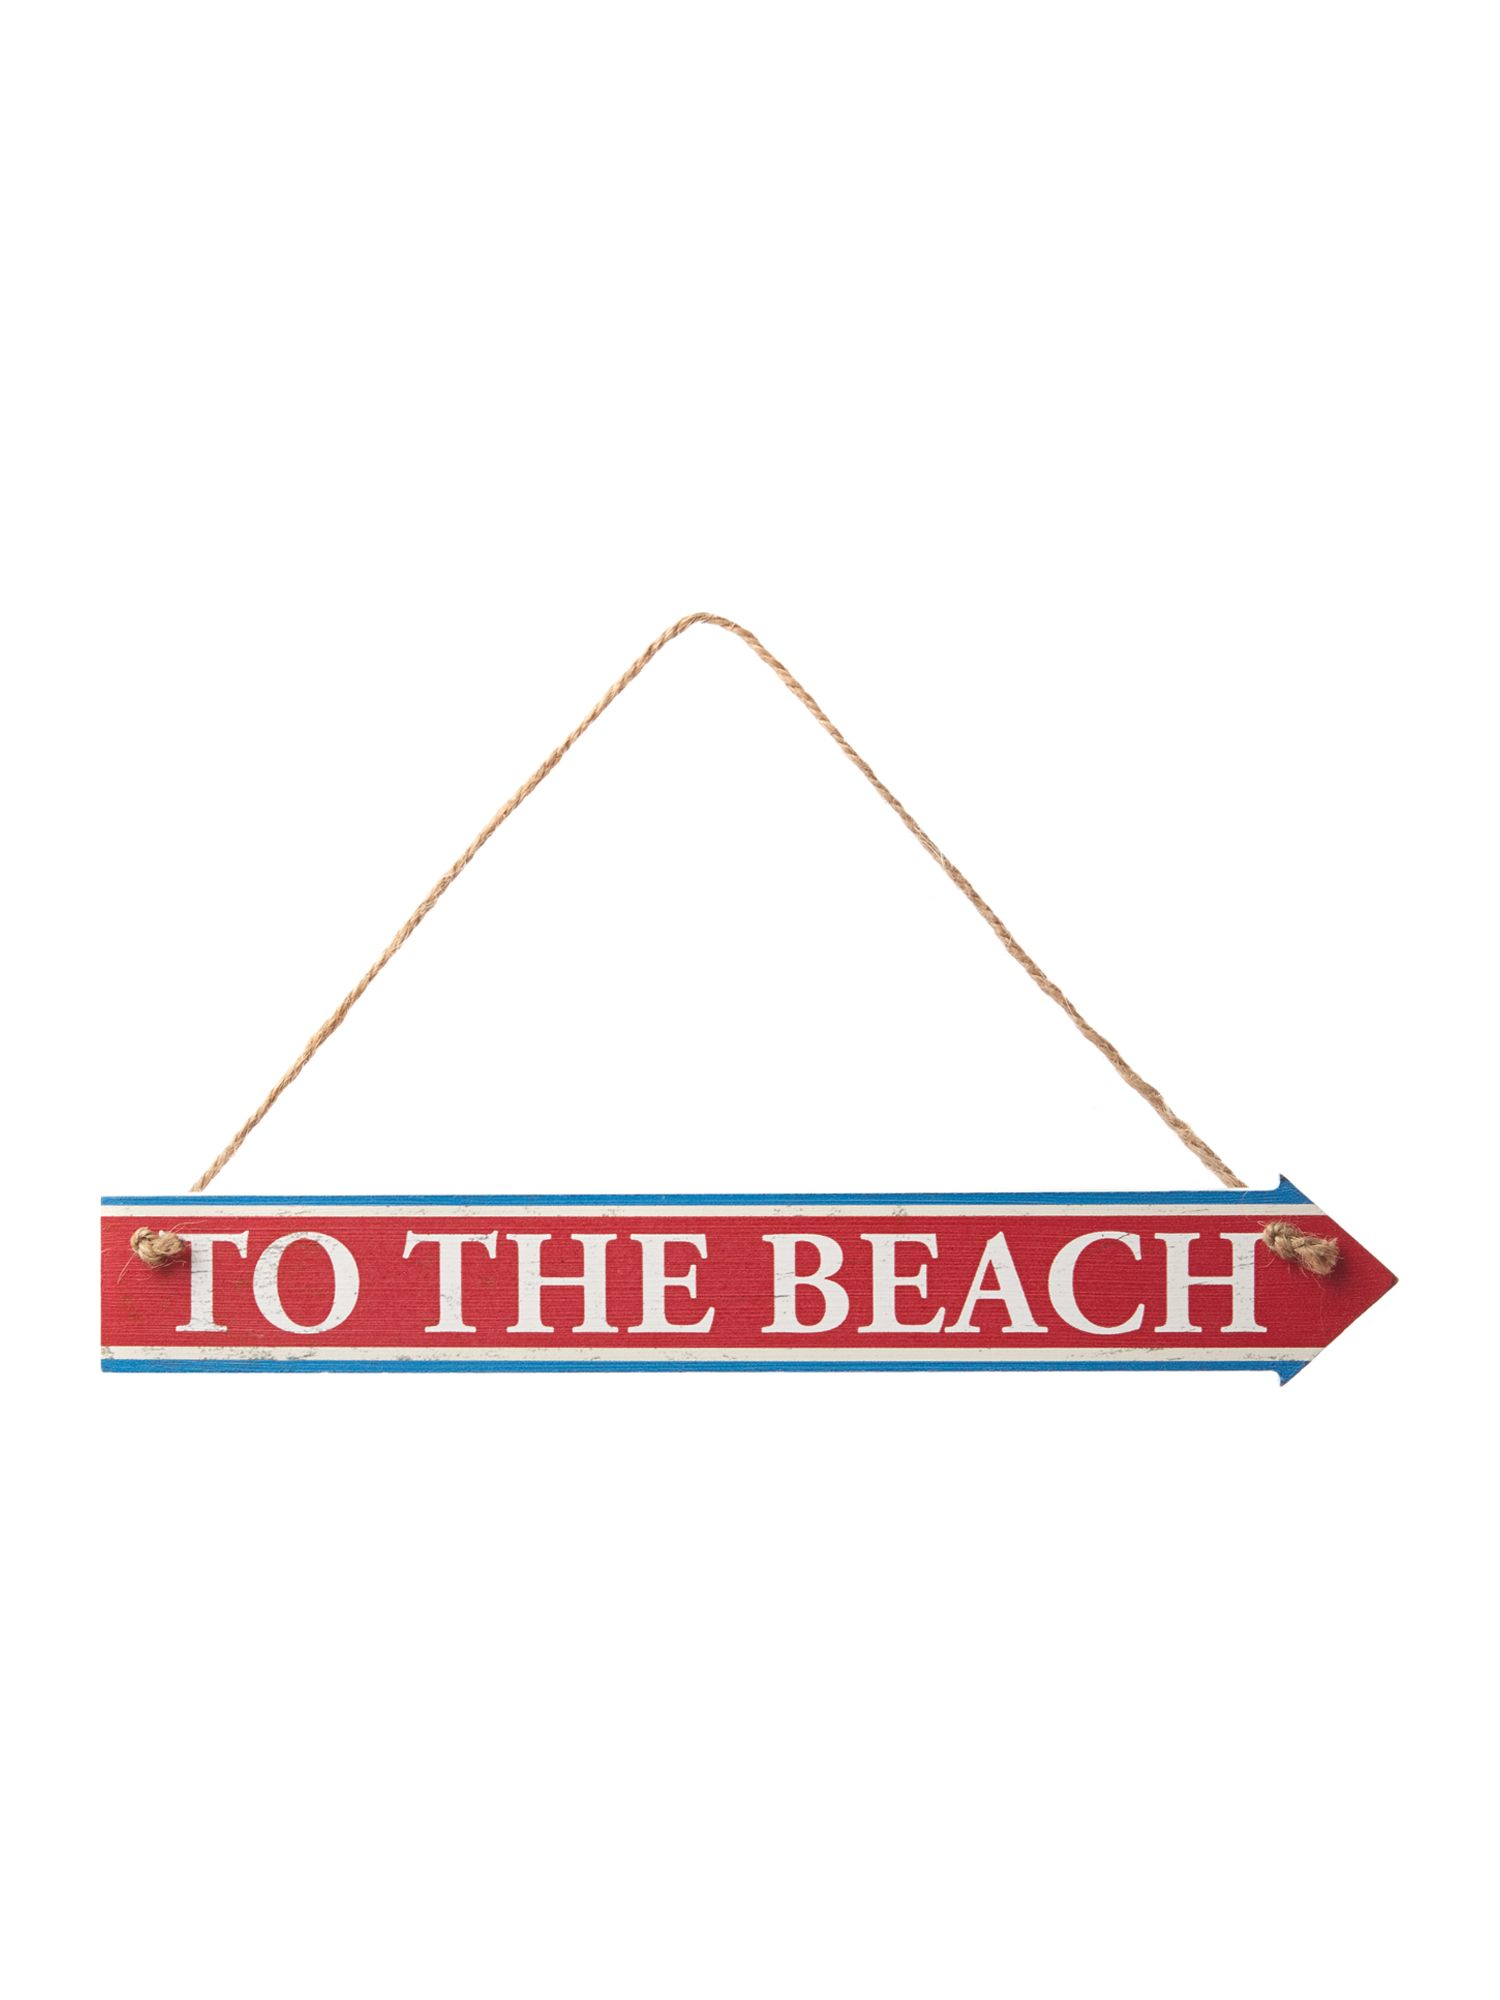 Wooden hanging To the Beach sign